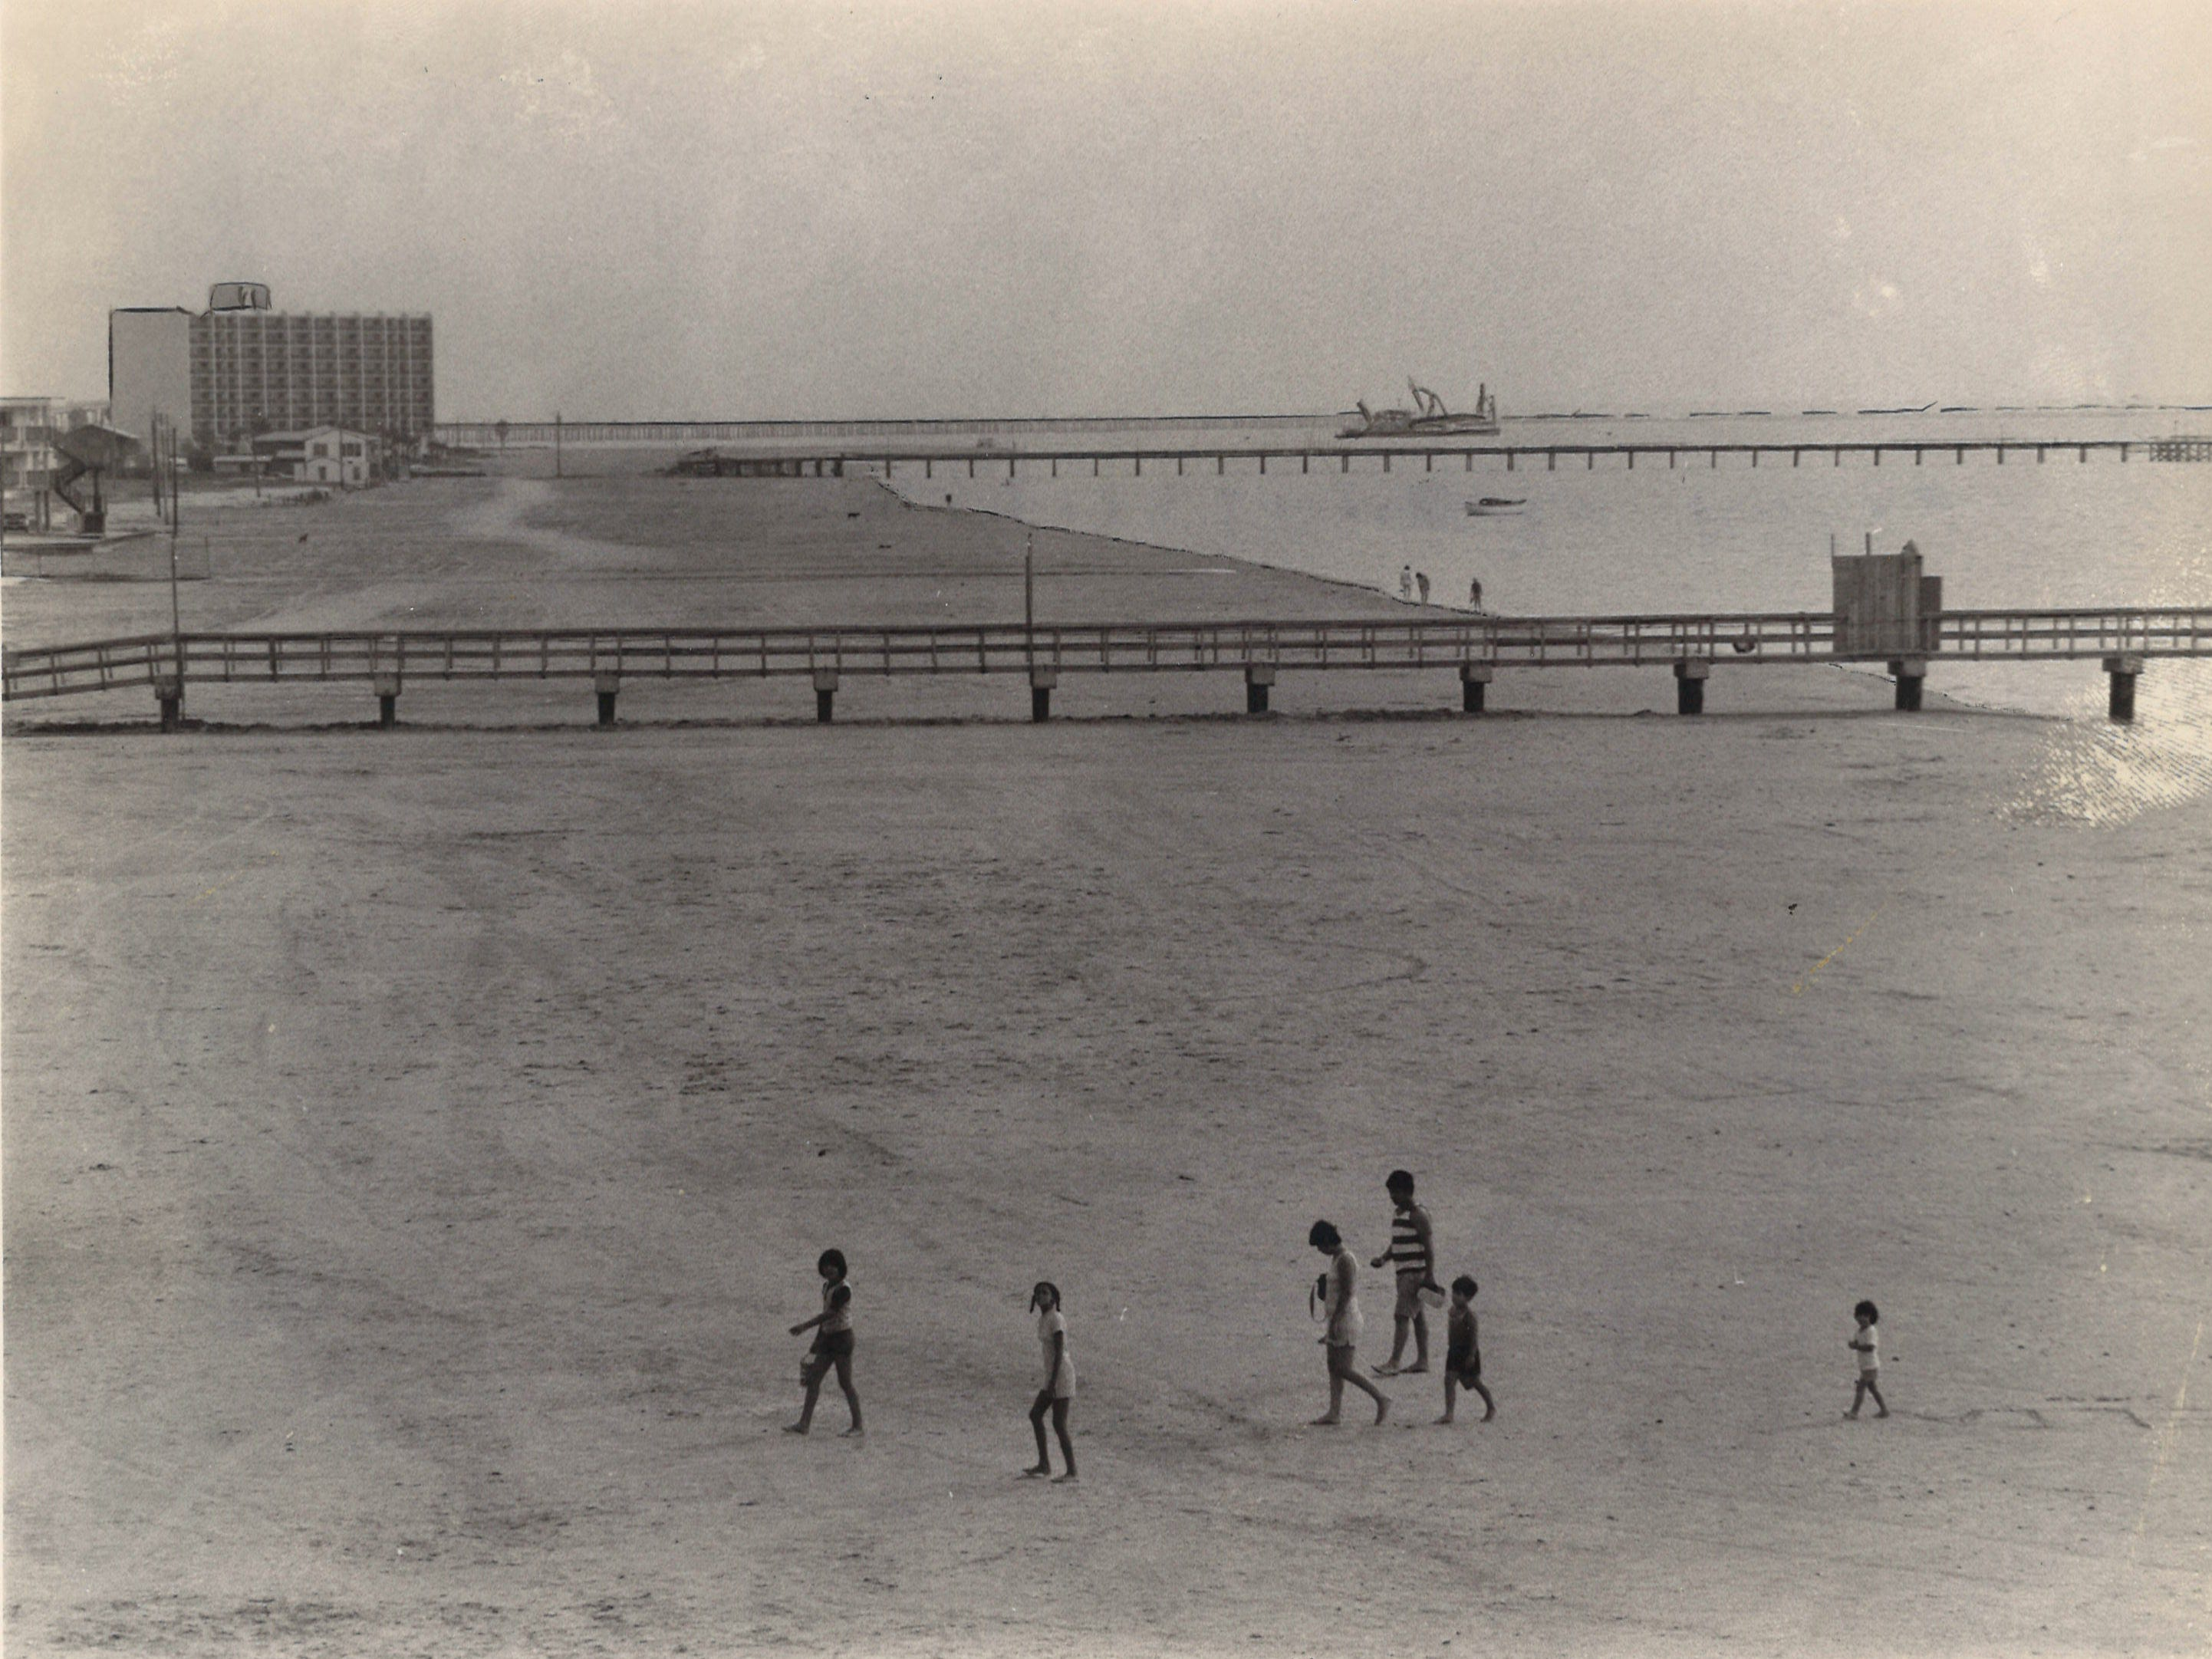 Corpus Christi's North Beach in July 1977.